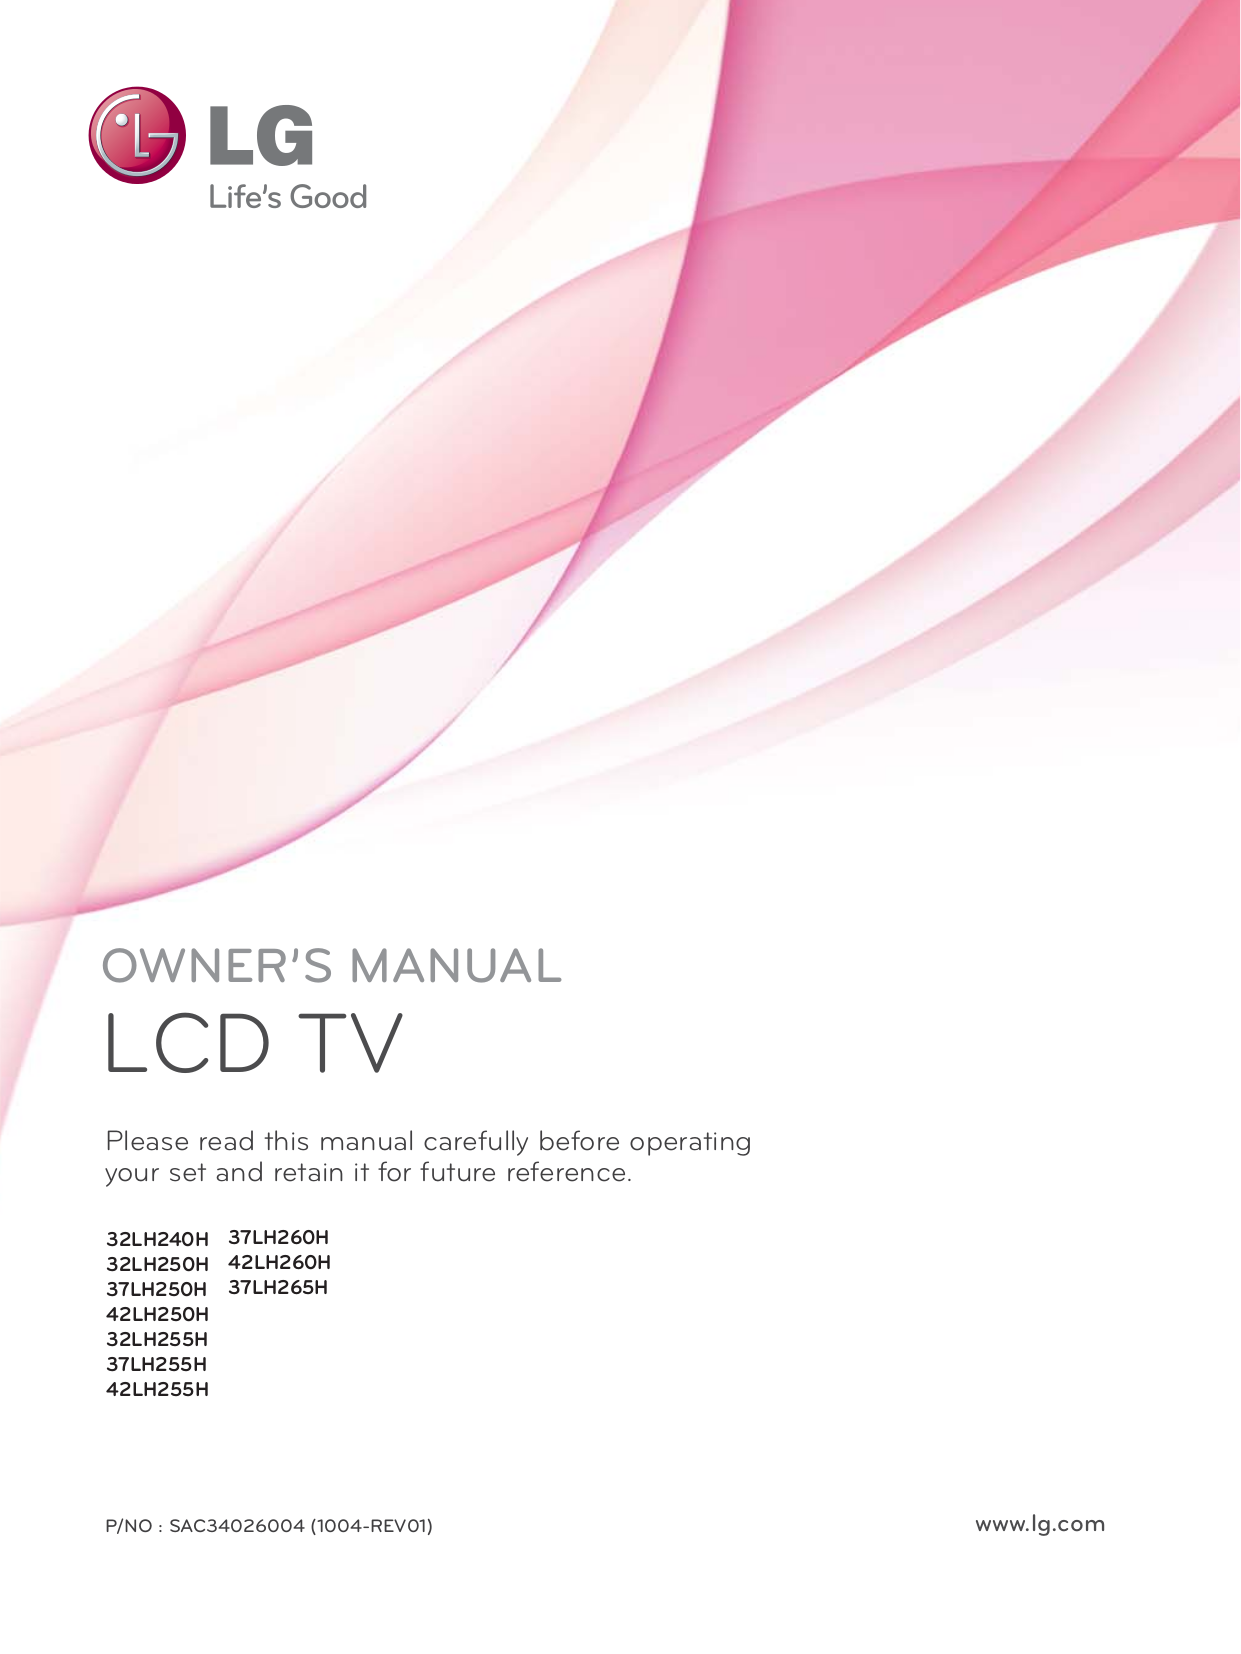 pdf for LG TV 32LH250H manual